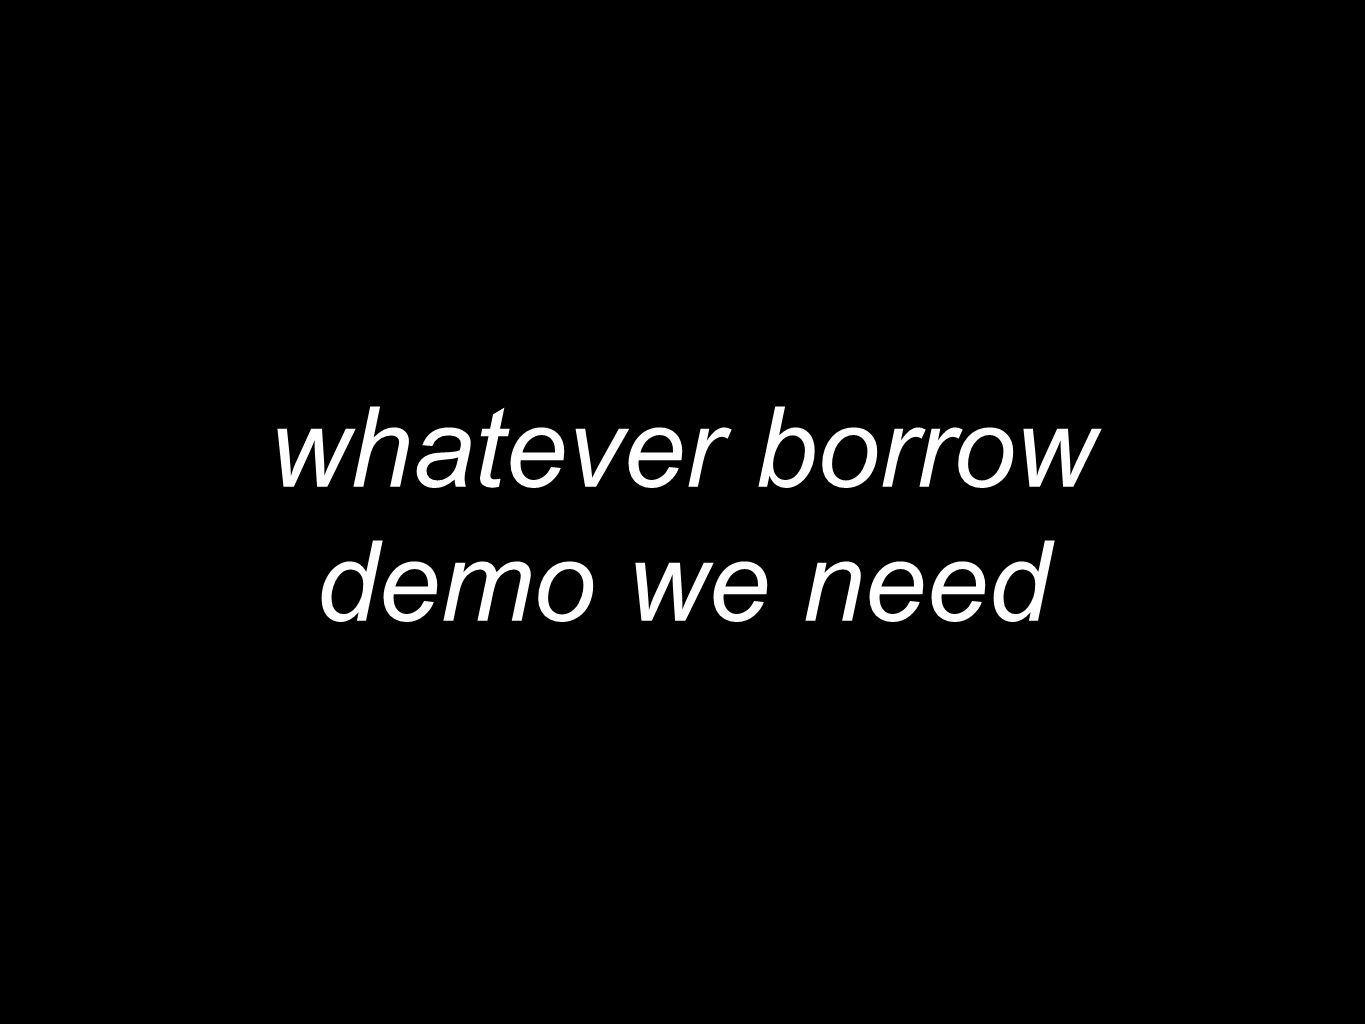 whatever borrow demo we need